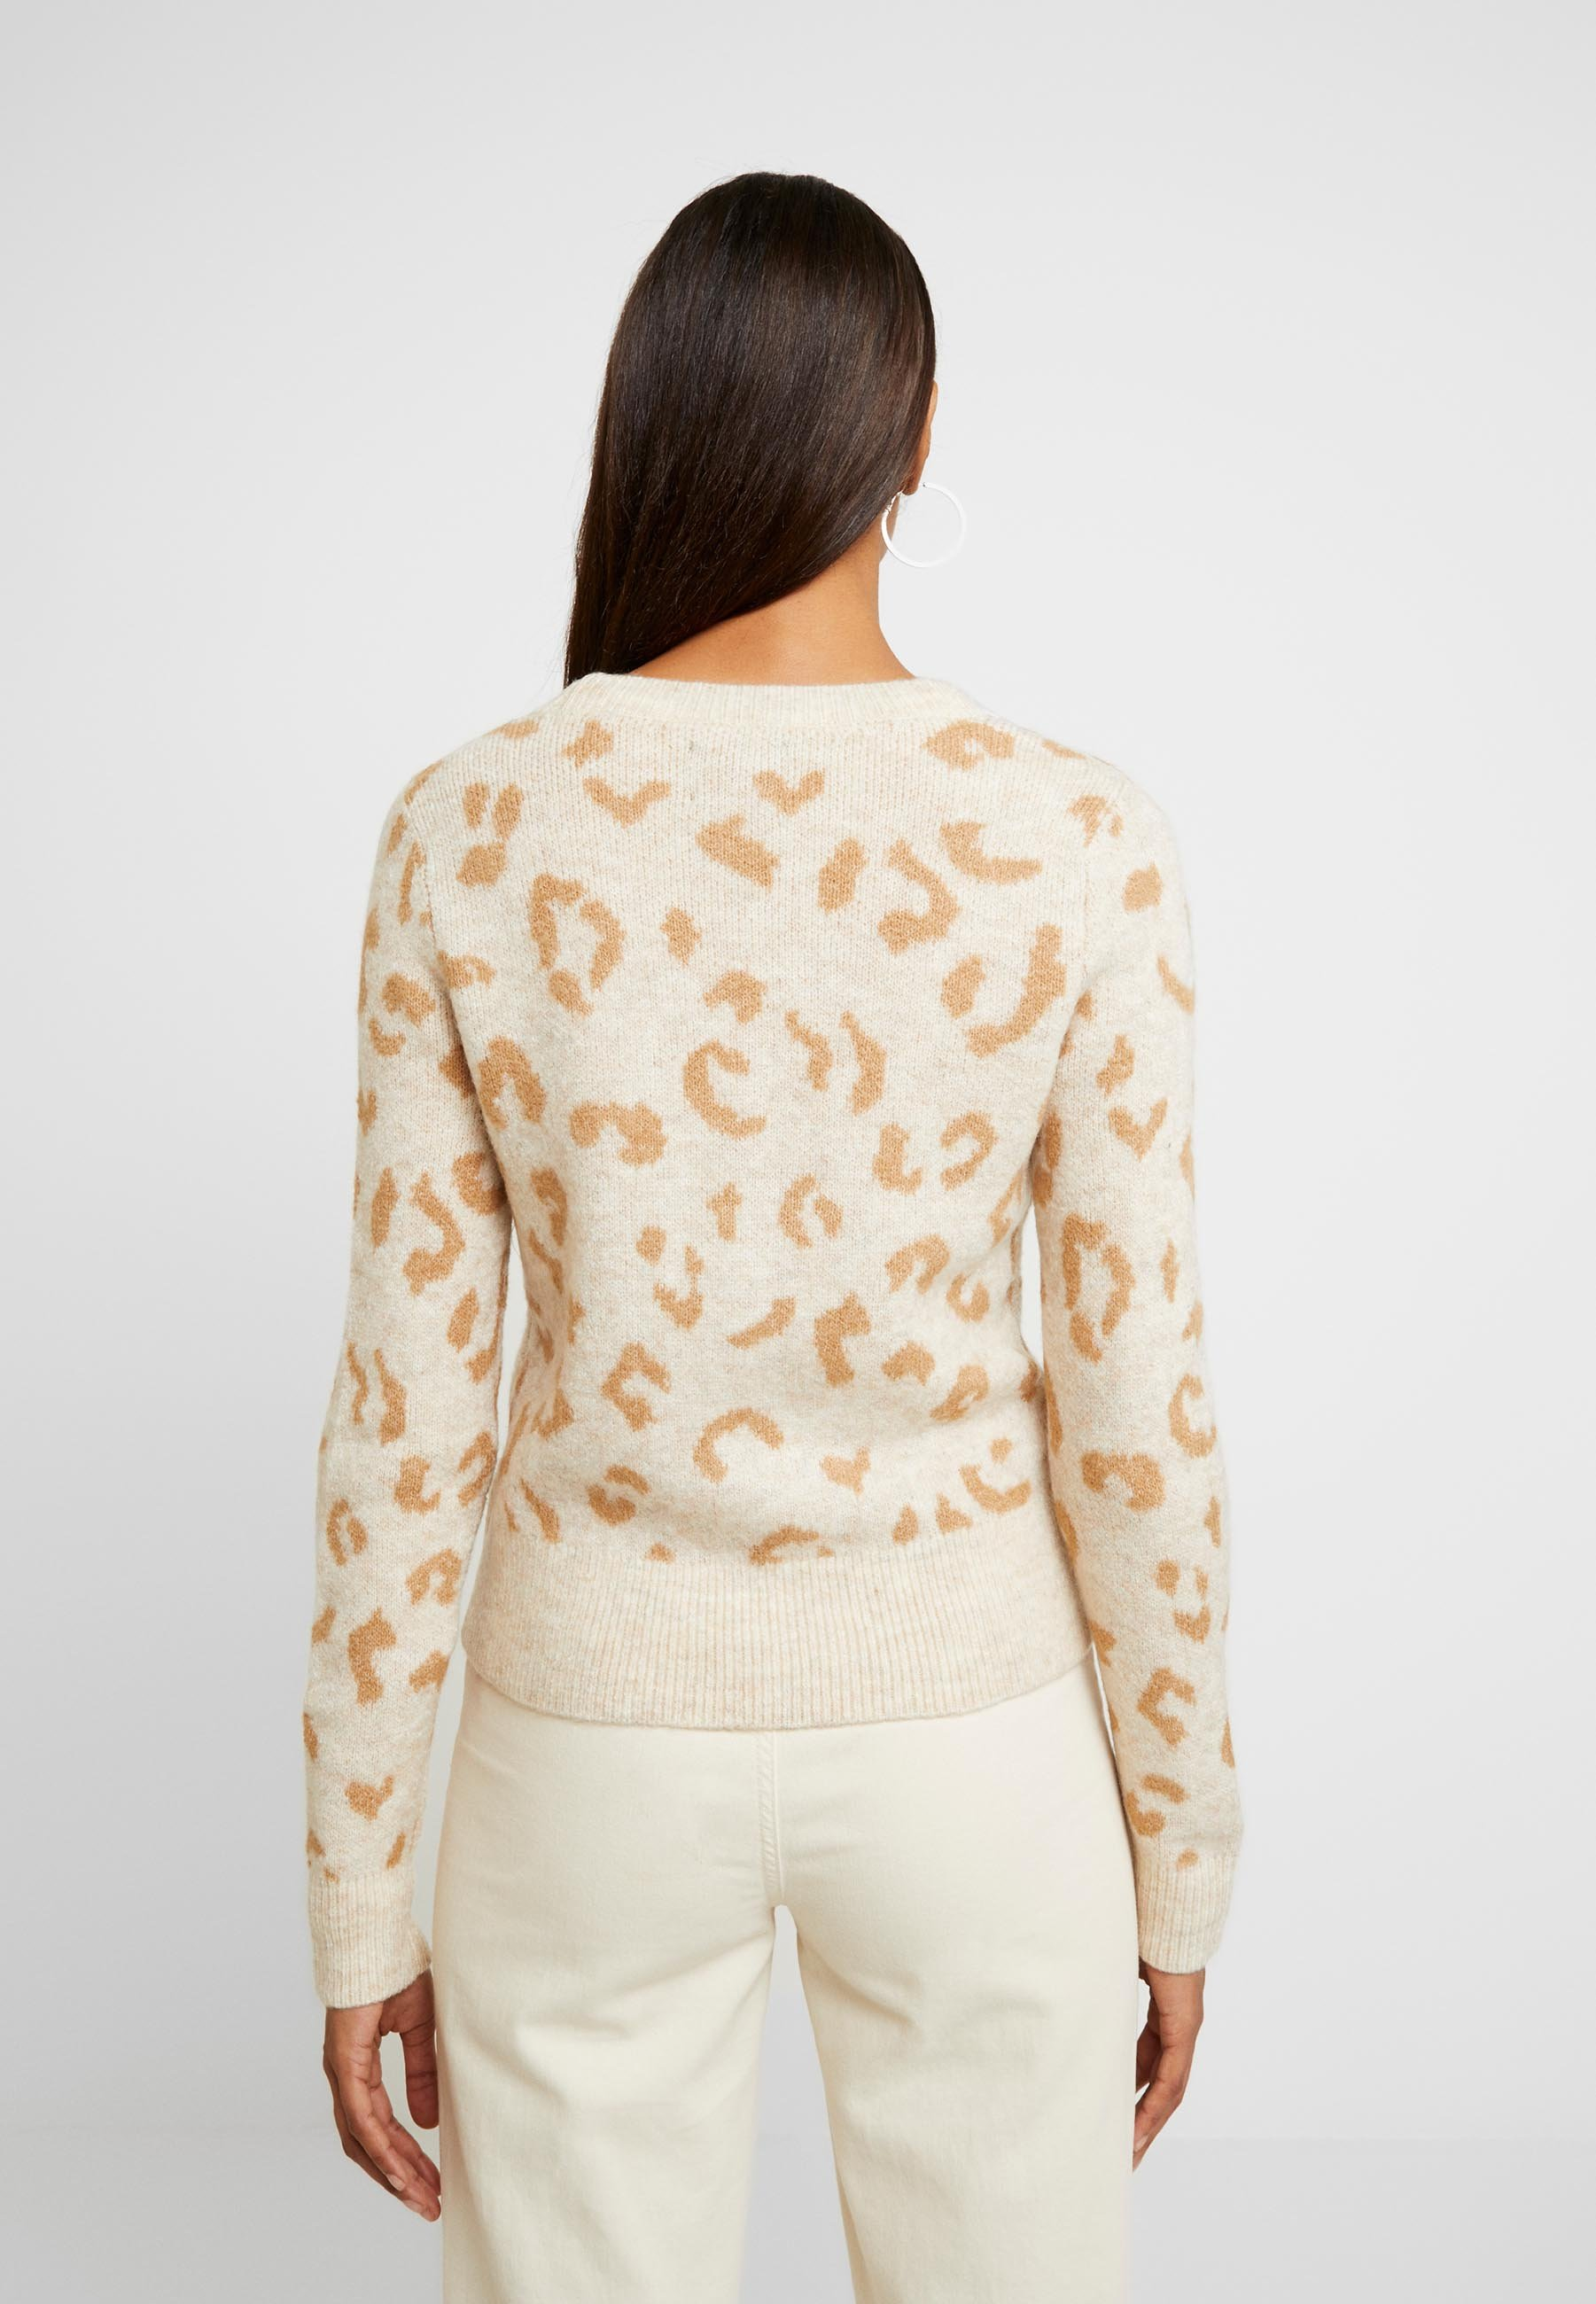 Abercrombie & Fitch Cardigan - brown